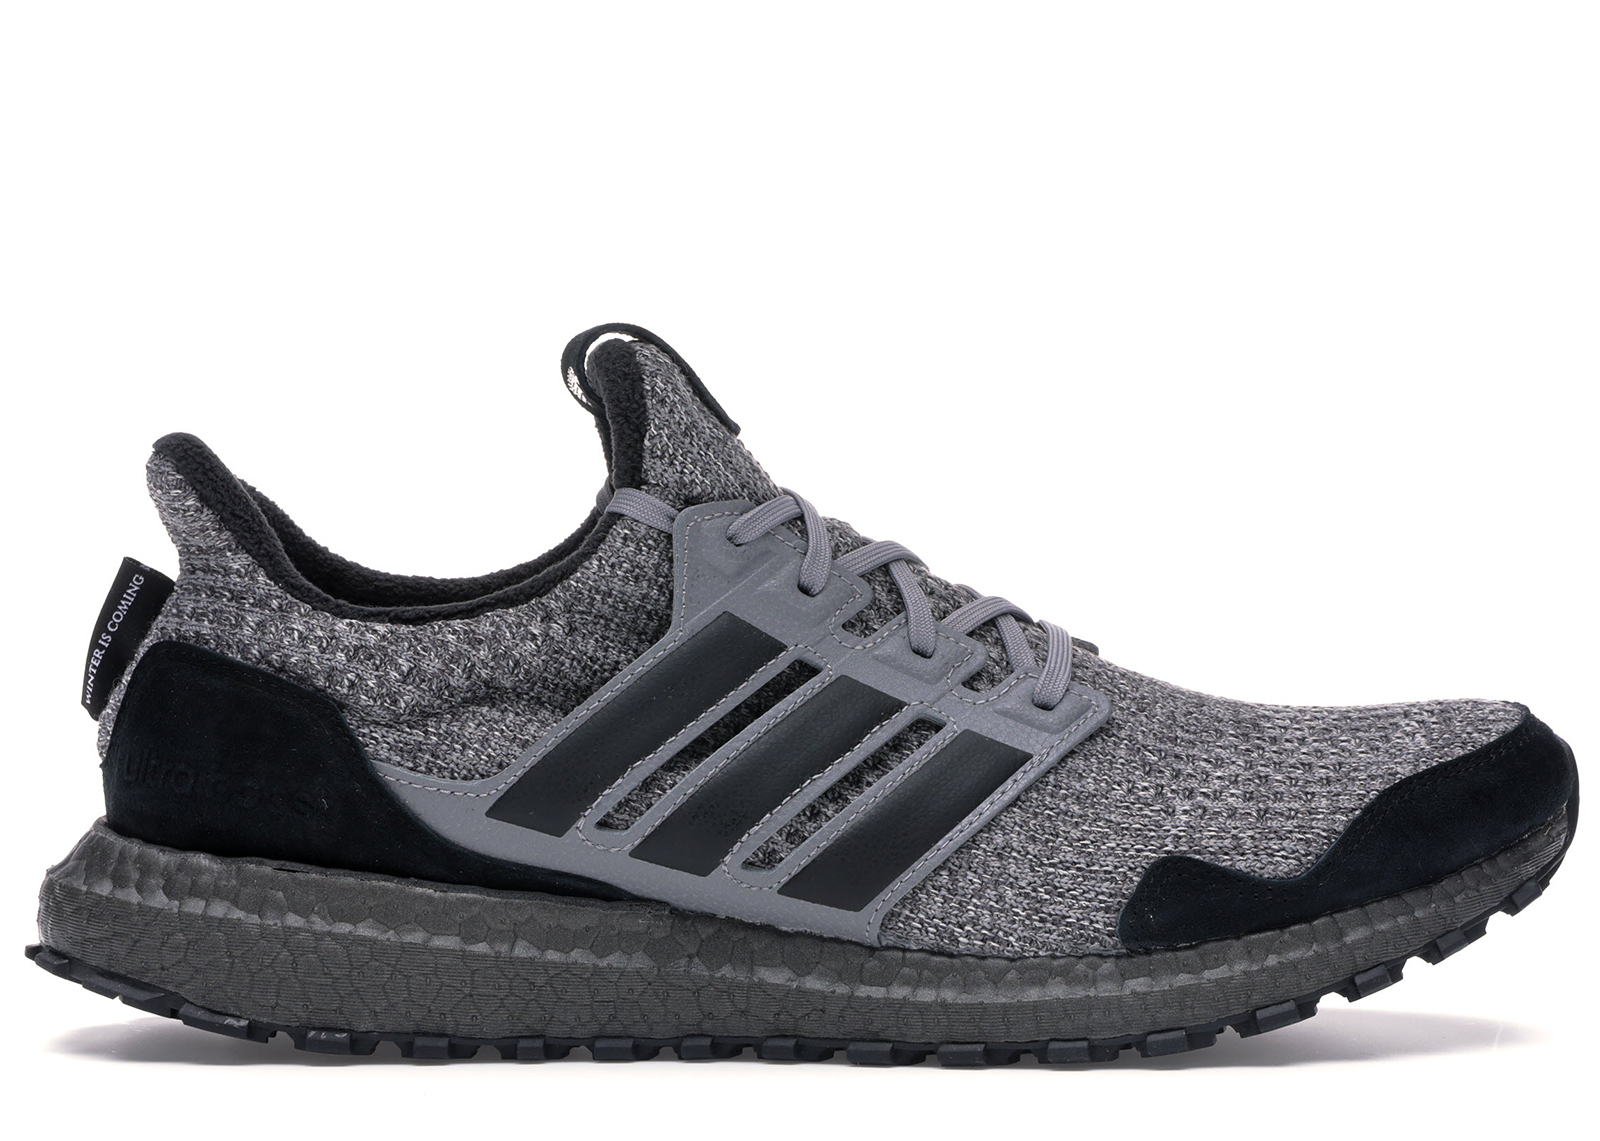 ADIDAS ULTRABOOST 4.0 X GAME OF THRONES HOUSE STARK Grey